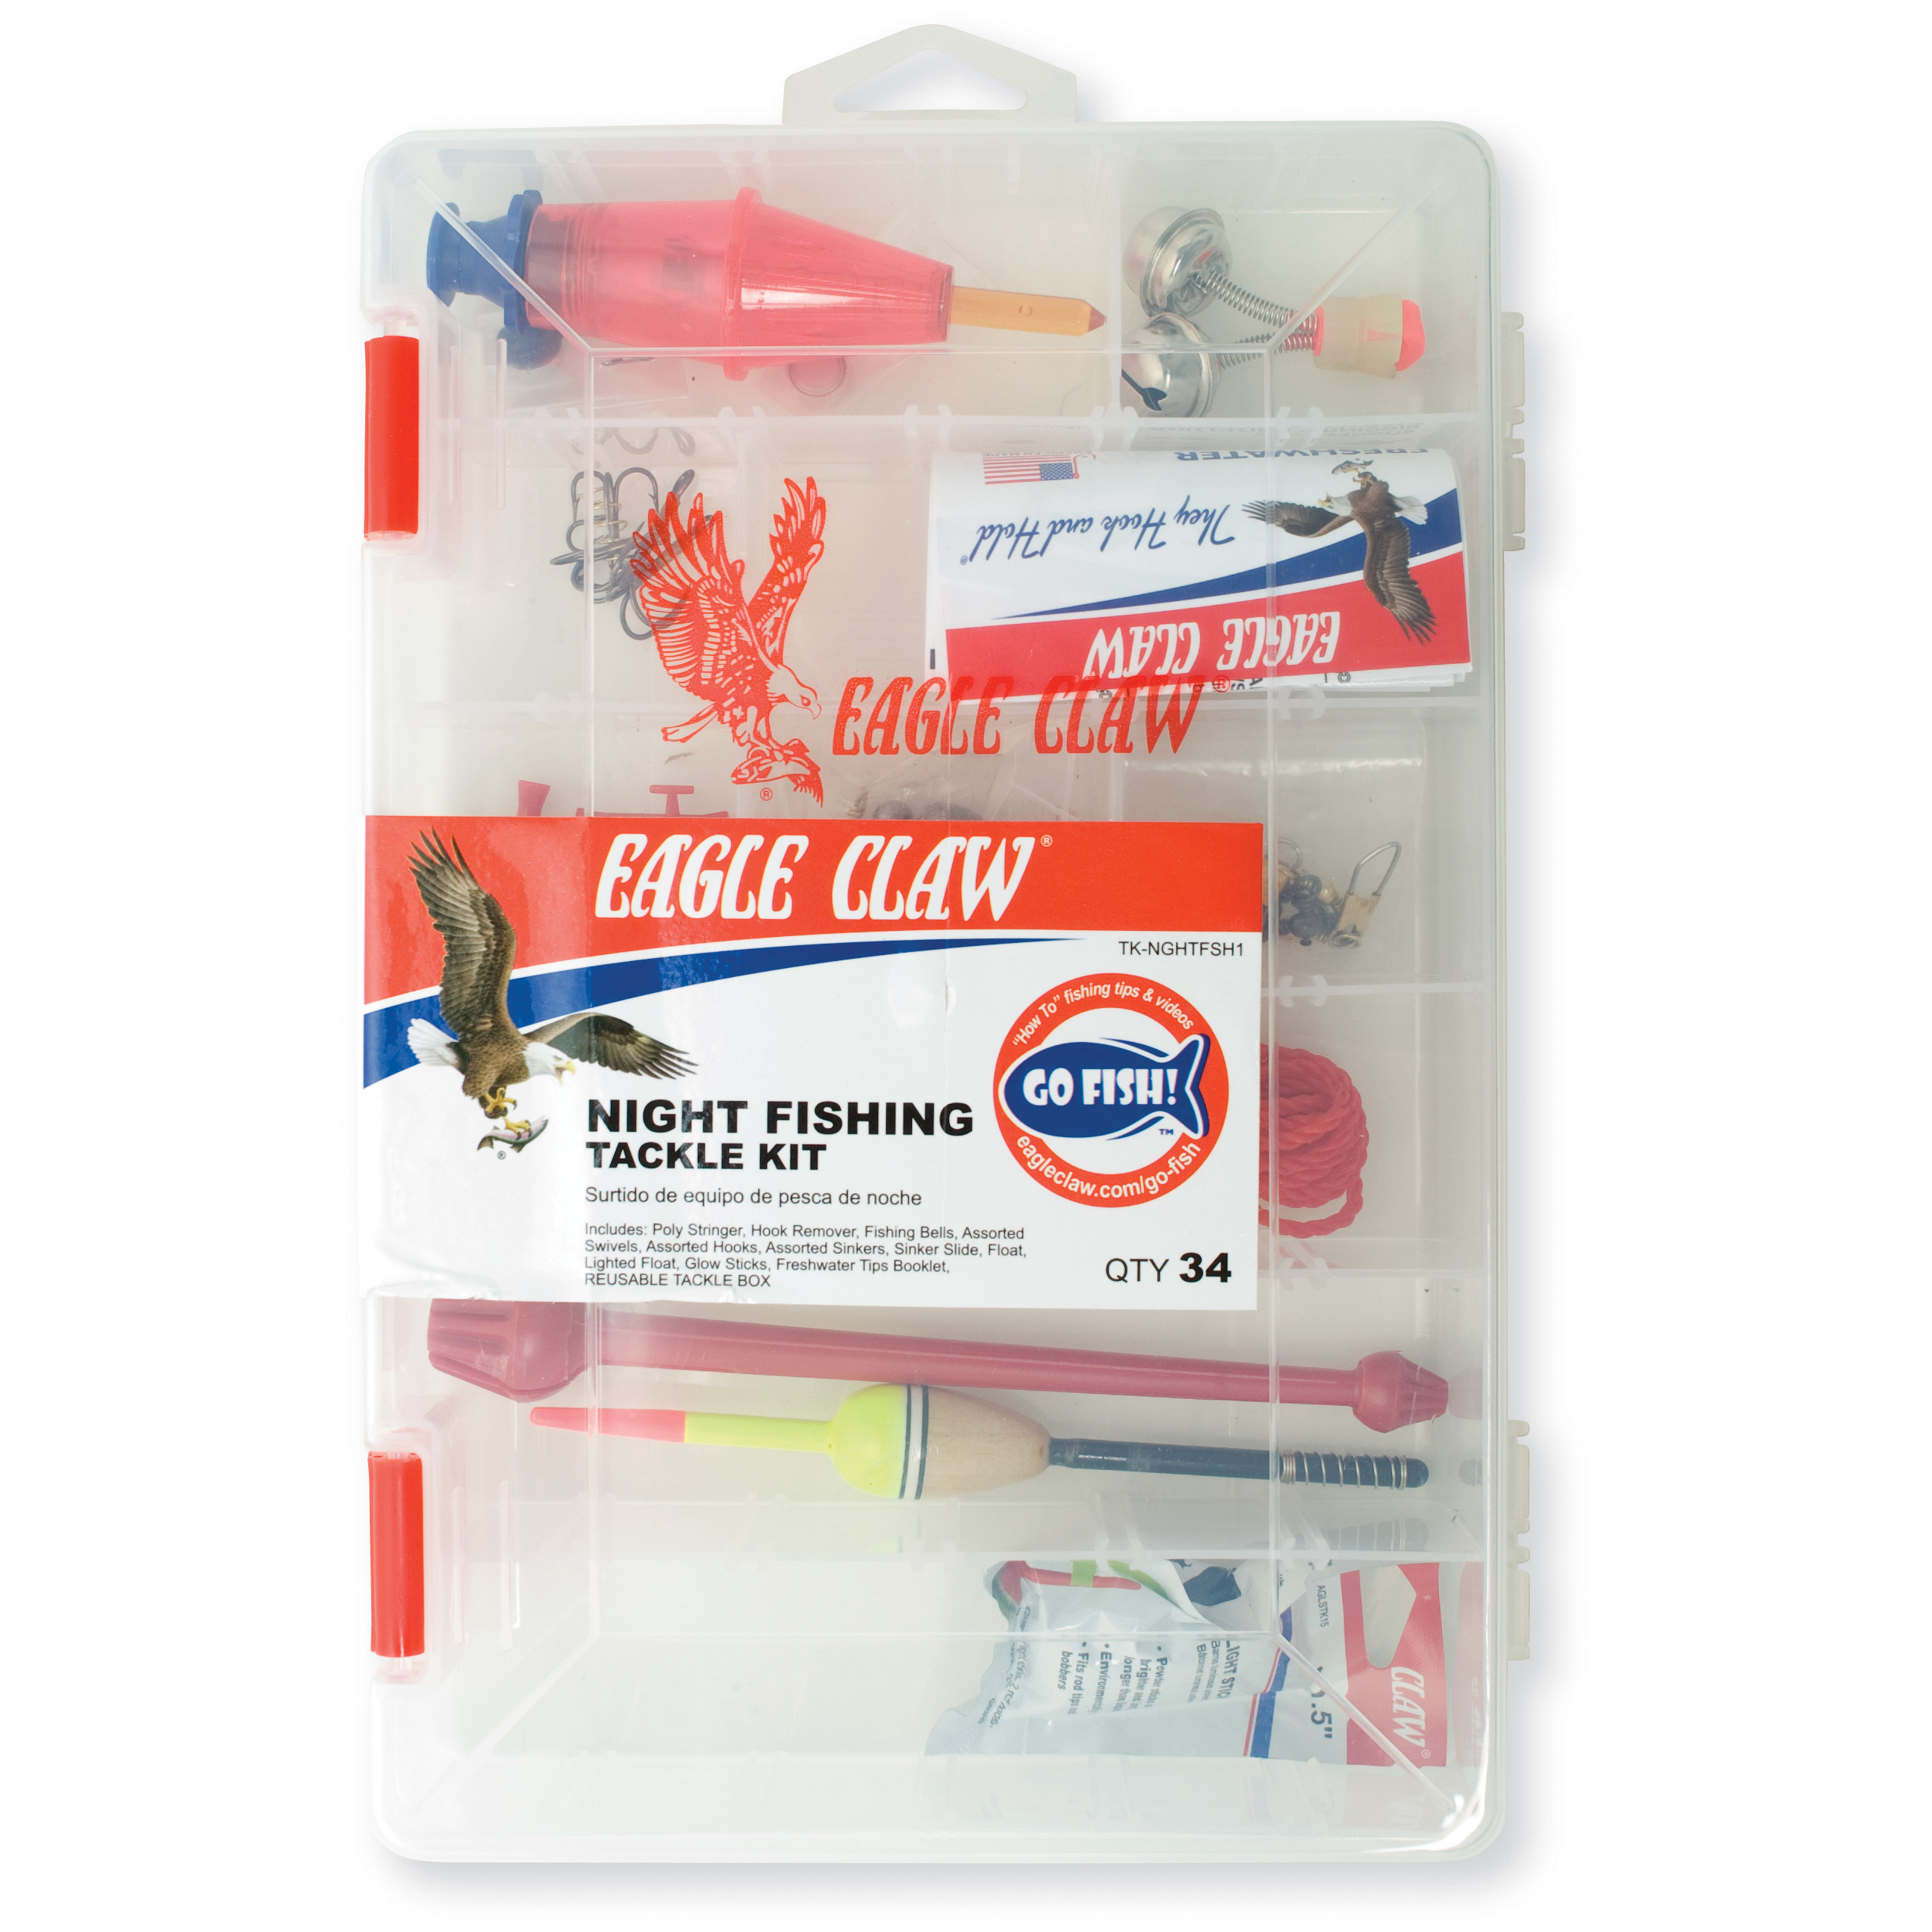 Eagle claw night fishing tackle kit thrill on for Fish tagging kit